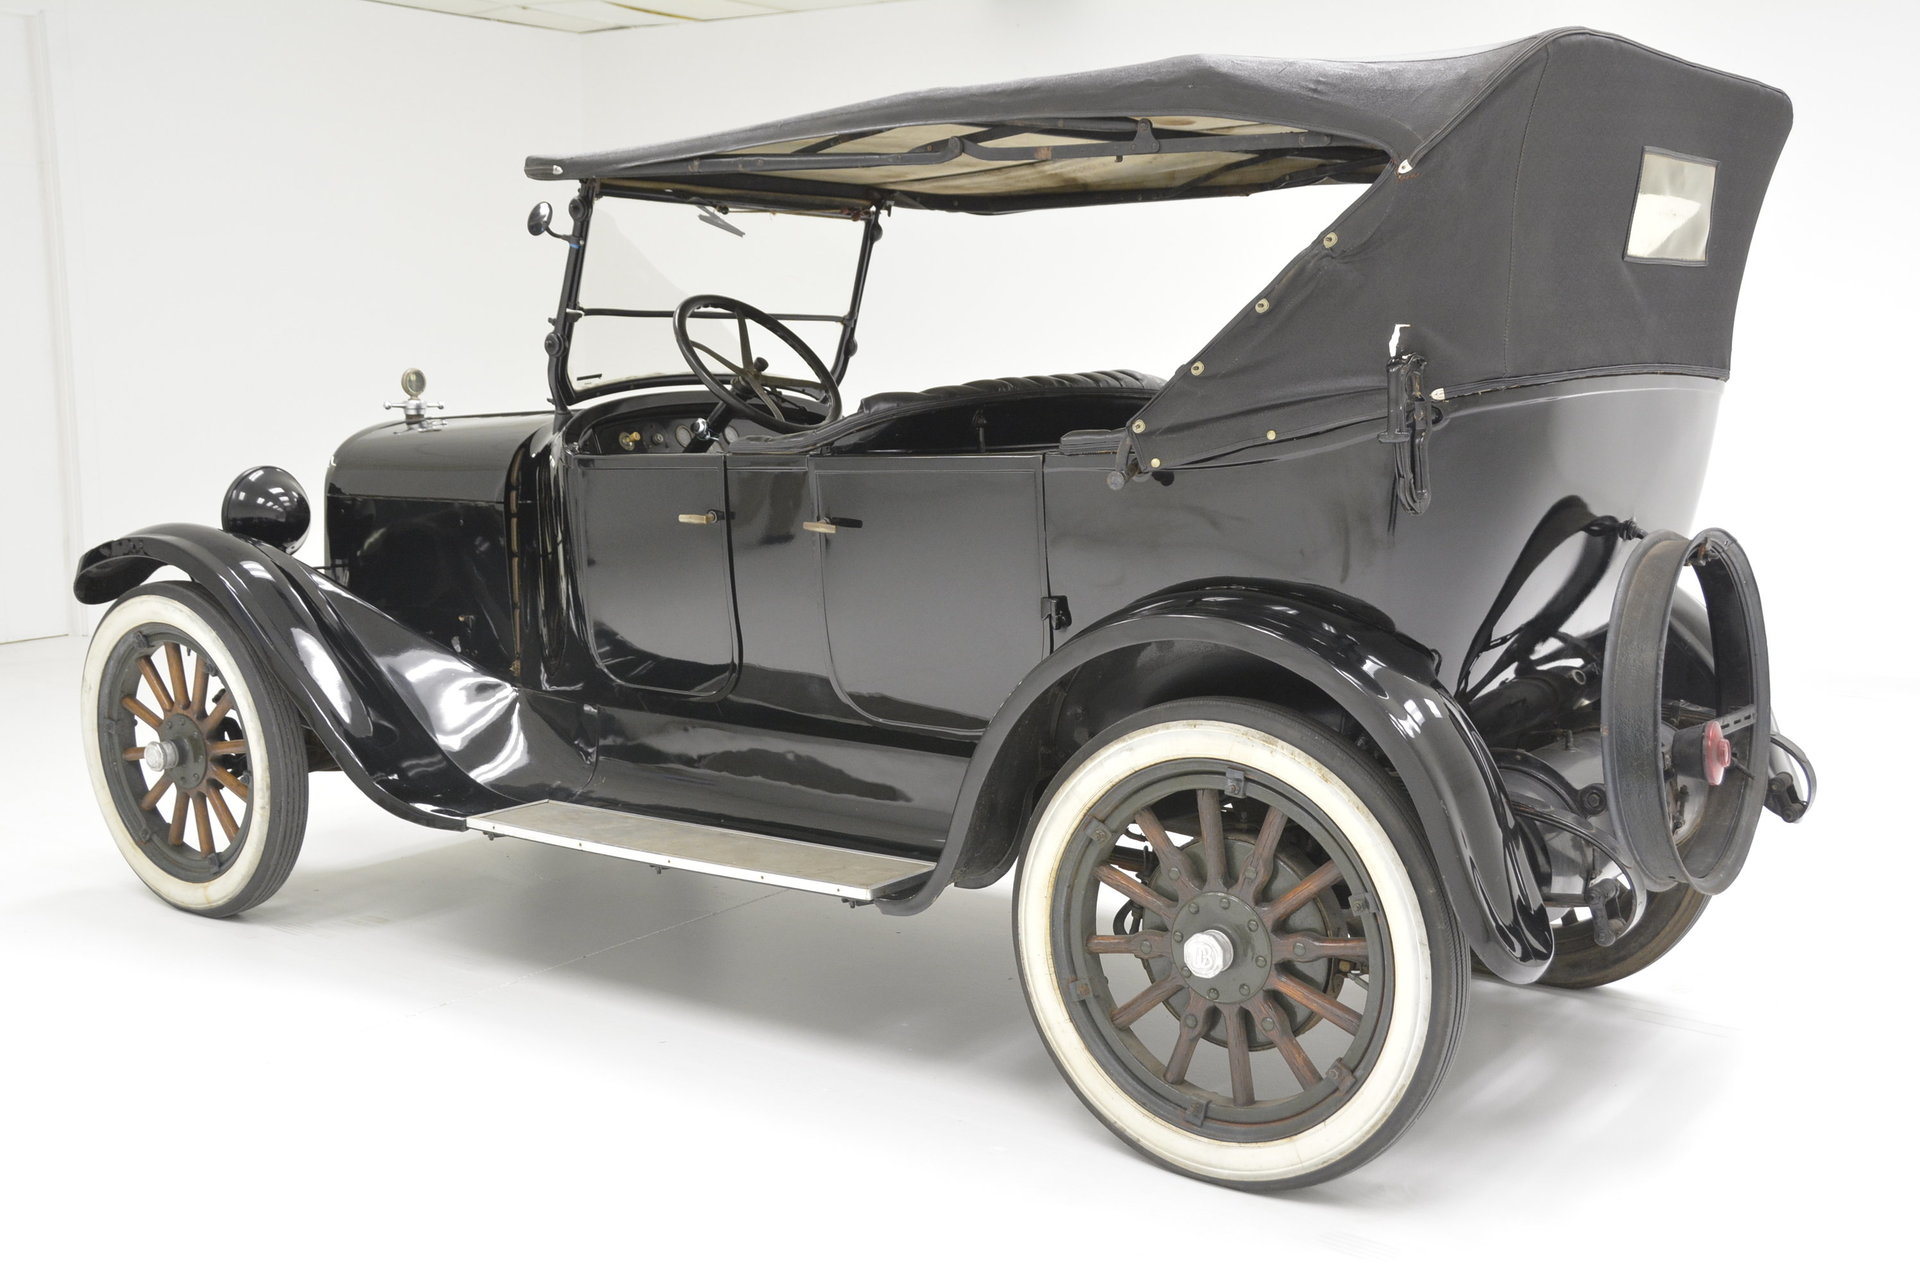 274 best images about 1920s American Rides on Pinterest ... |1929 Dodge Touring Car